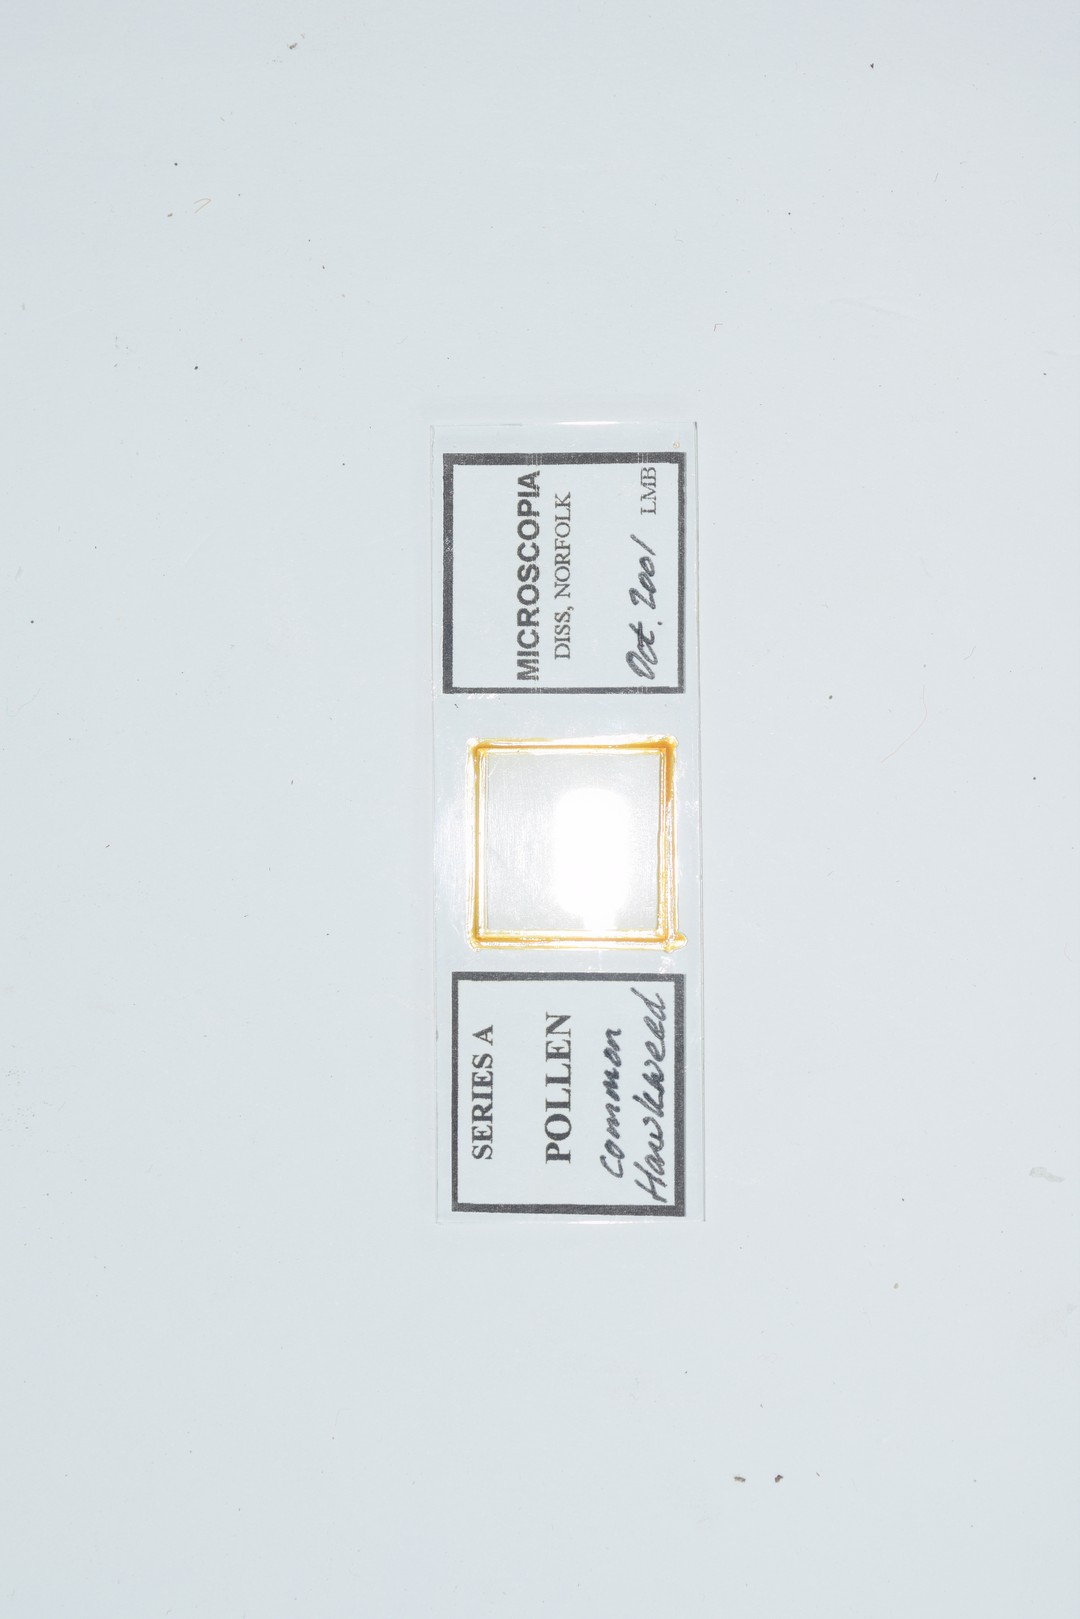 Collection of various microscope slides - Image 3 of 3